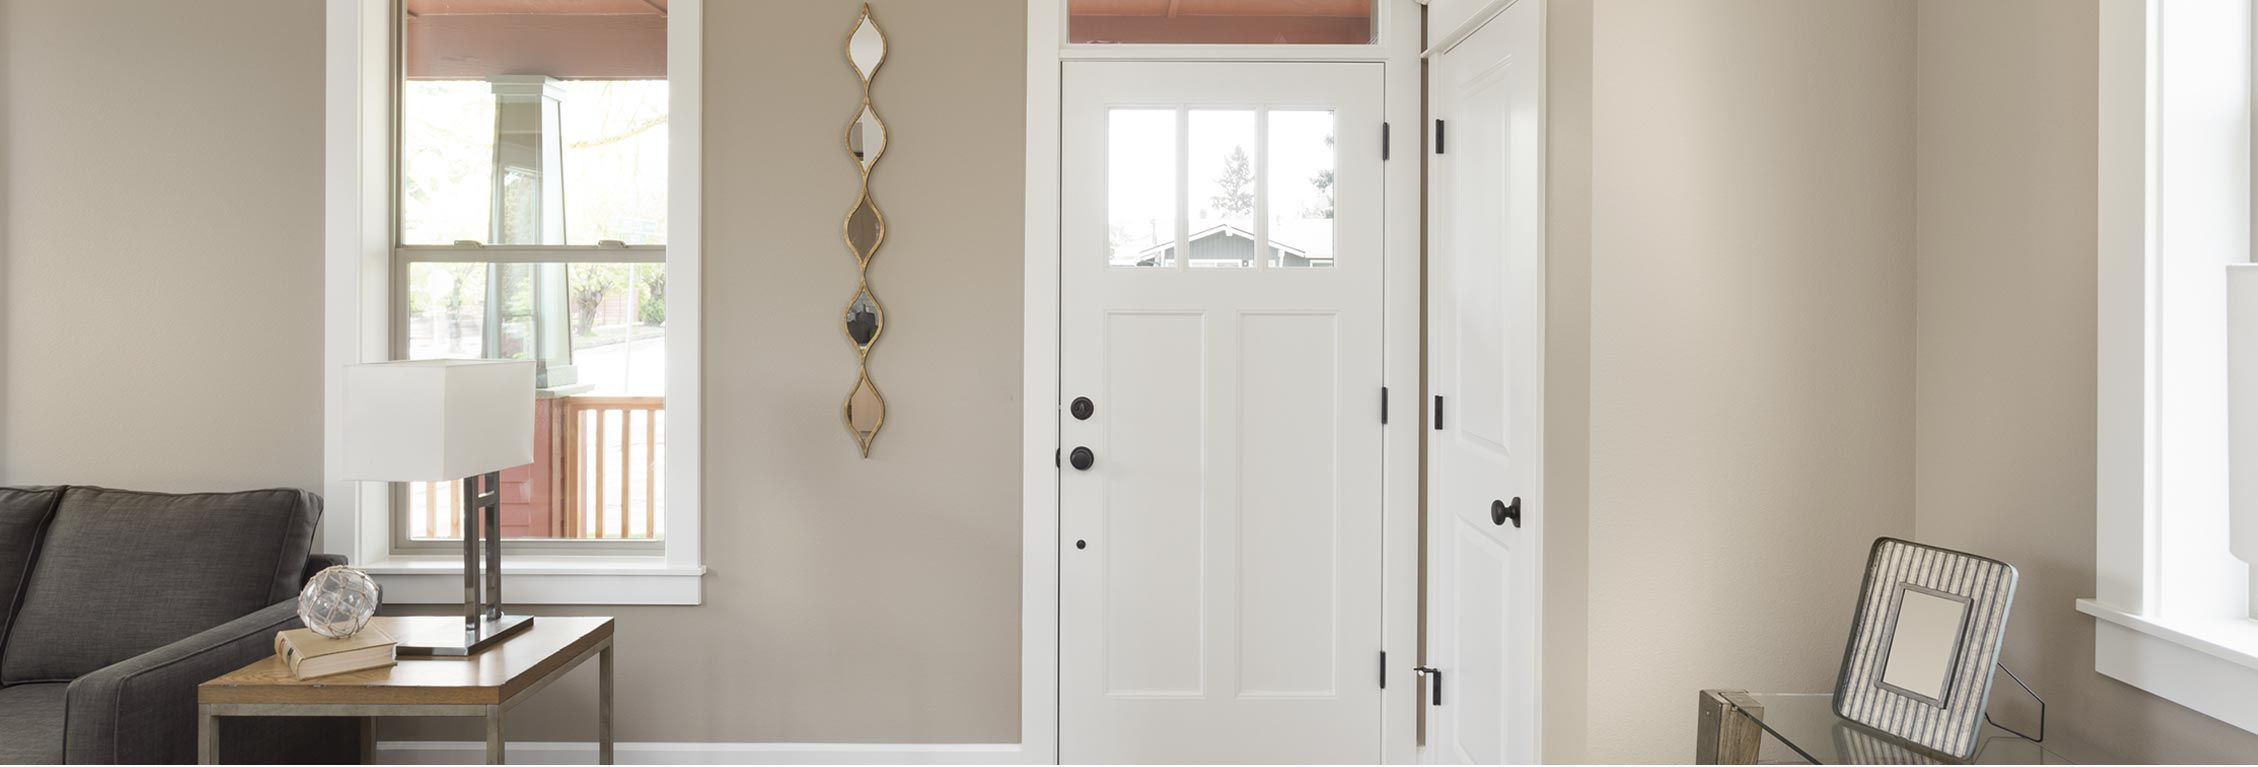 How To Paint An Interior Door Home Decorating Painting Advice Doors Interior Painted Interior Doors Interior